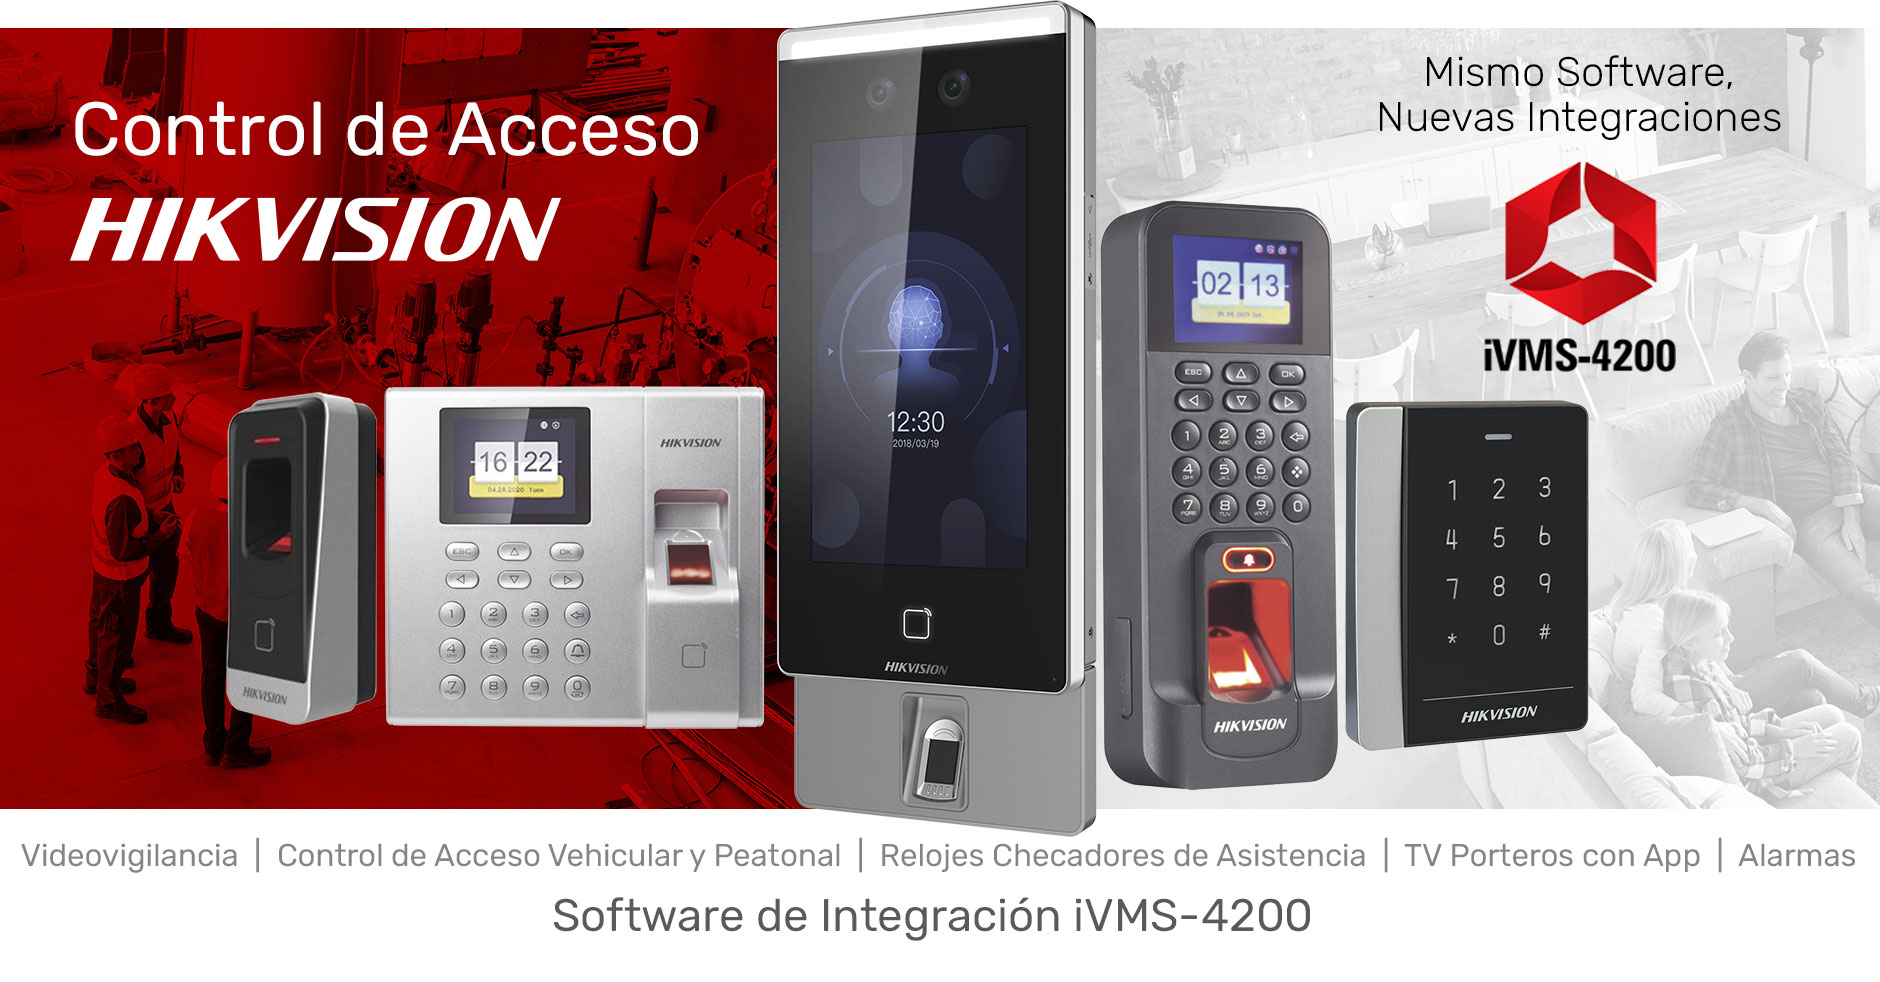 control_acceso_hikvision02.jpg